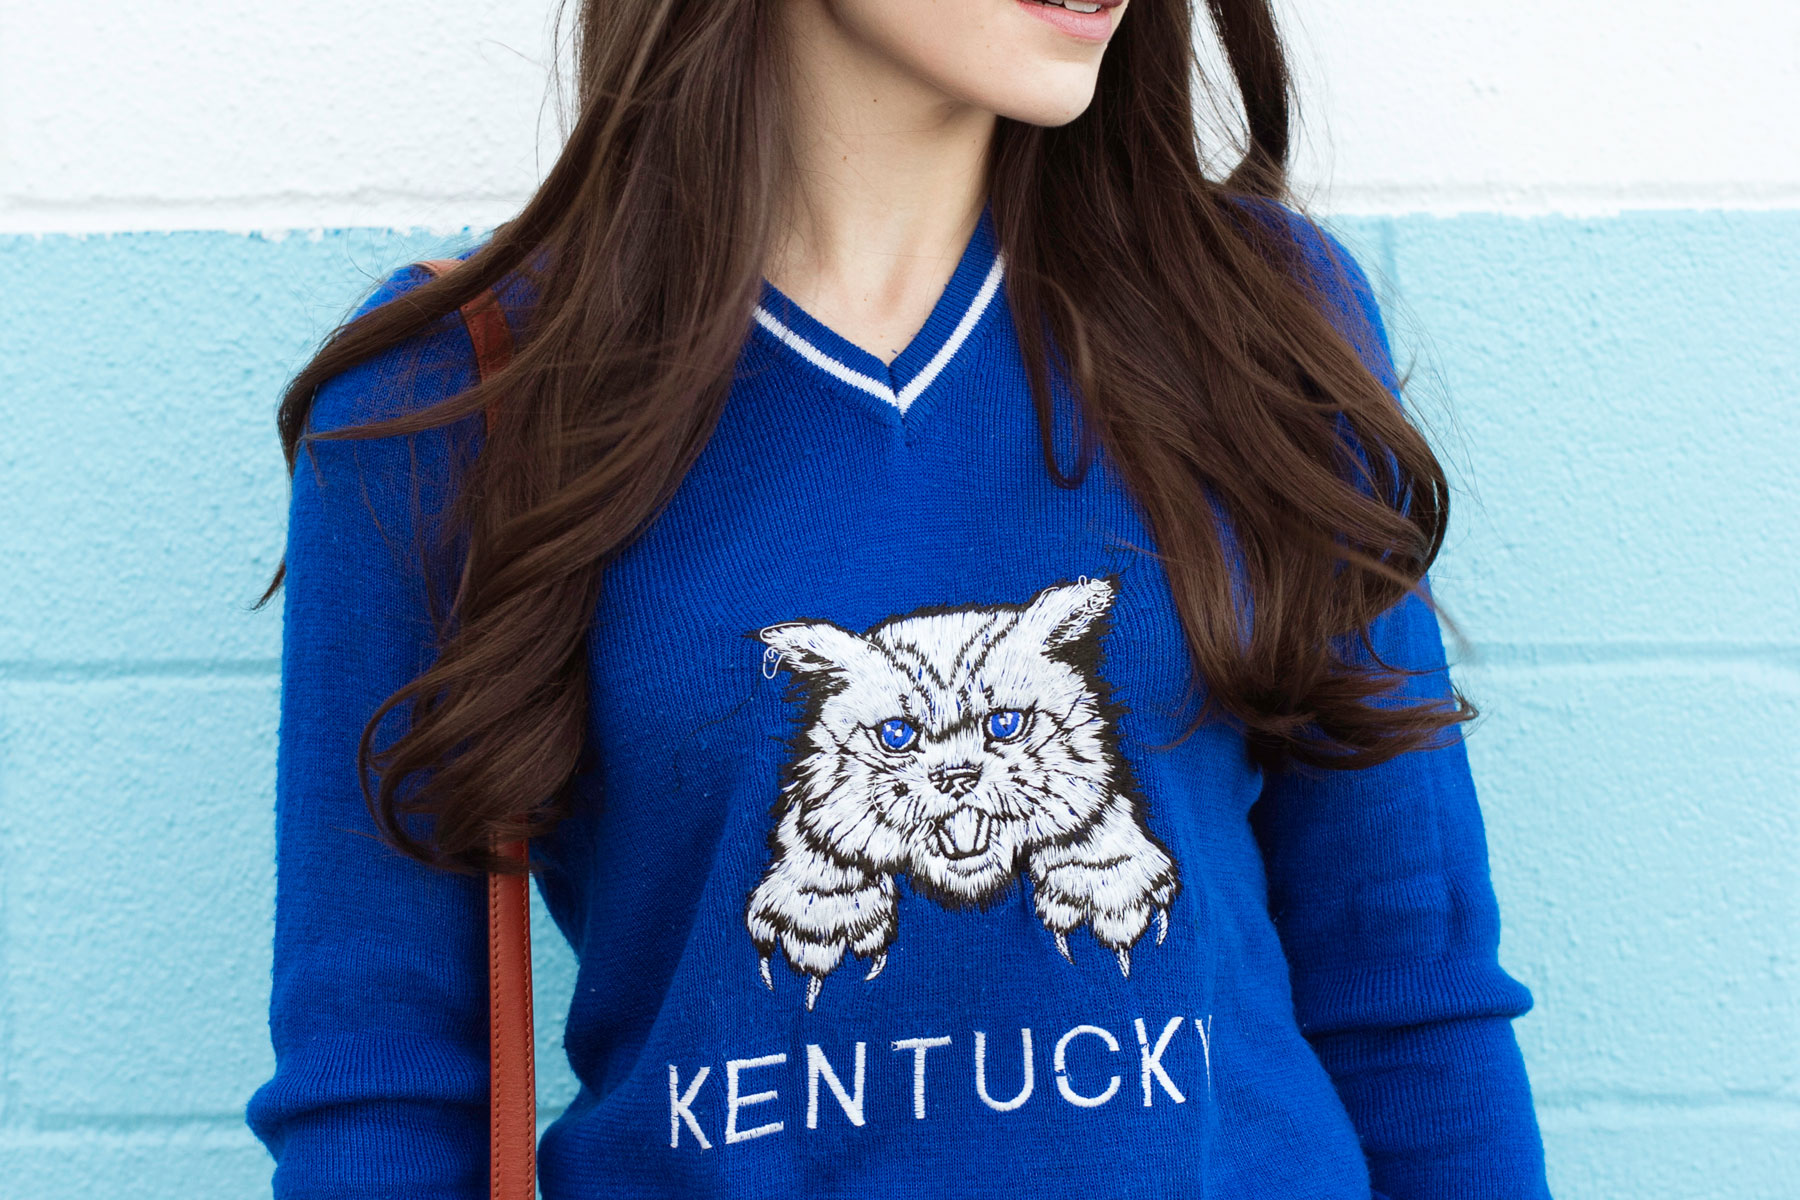 University of Kentucky Sweater, Vintage Varsity Sweater, UK Style, Game Day Style, Vintage Louis Vuitton Crossbody Bag, Blue Suede Pumps, Current Elliott Boyfriend Jeans